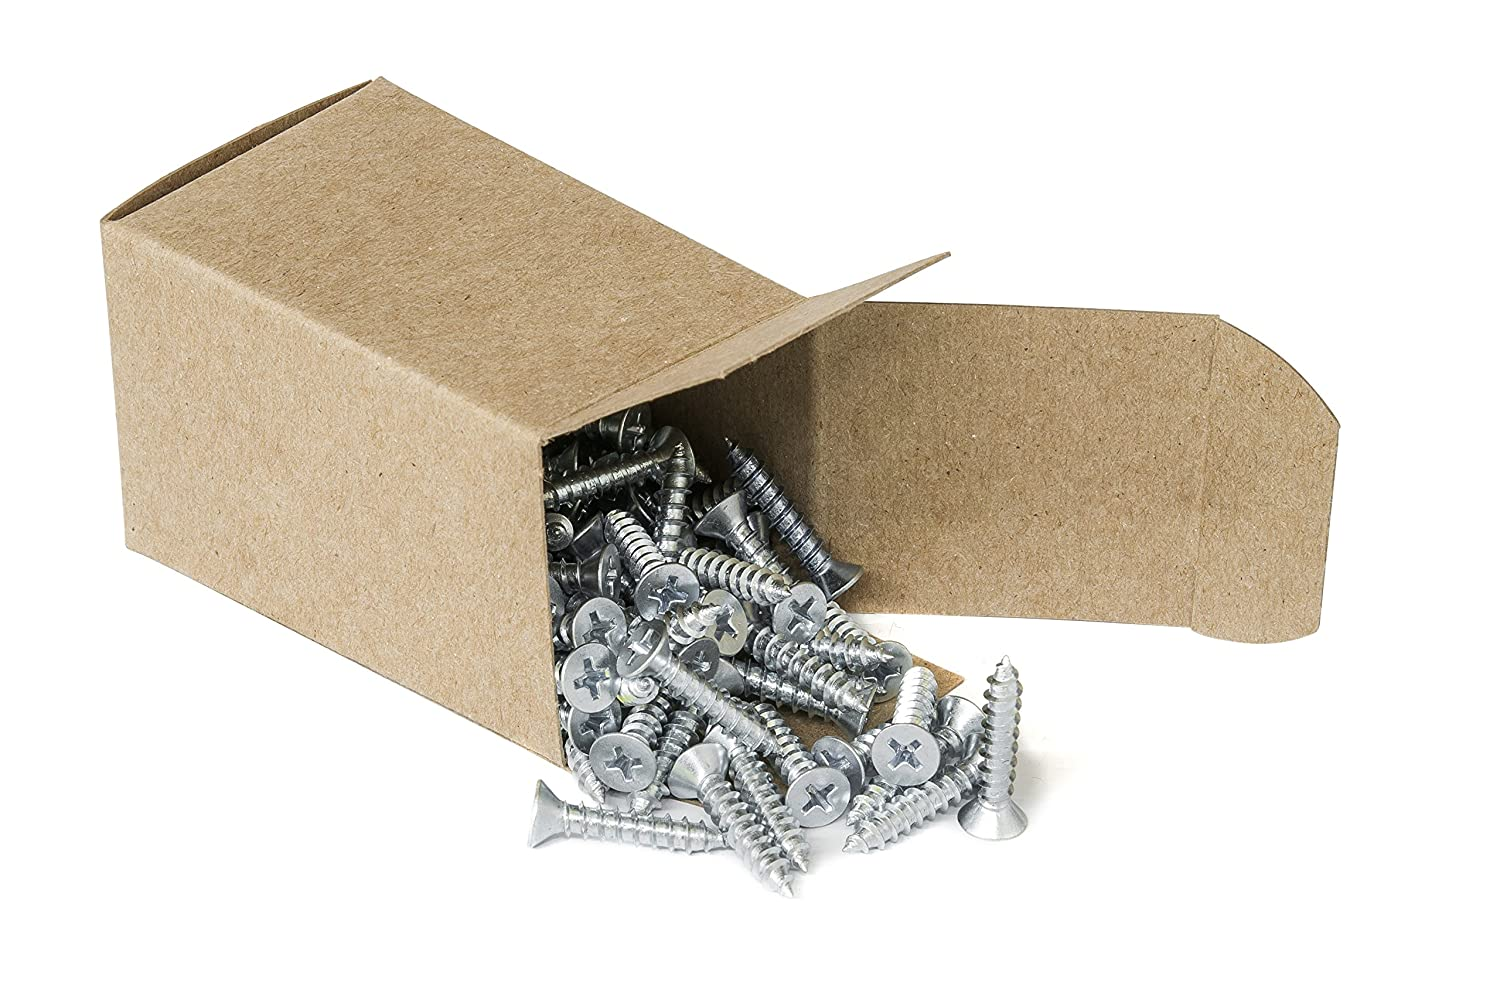 #10 x 1 Phillips Flat Head Countersink Screw Box of 100 or Fiberglass Zinc-Plated Steel for Attaches Sheet Metal to Wood Plastic